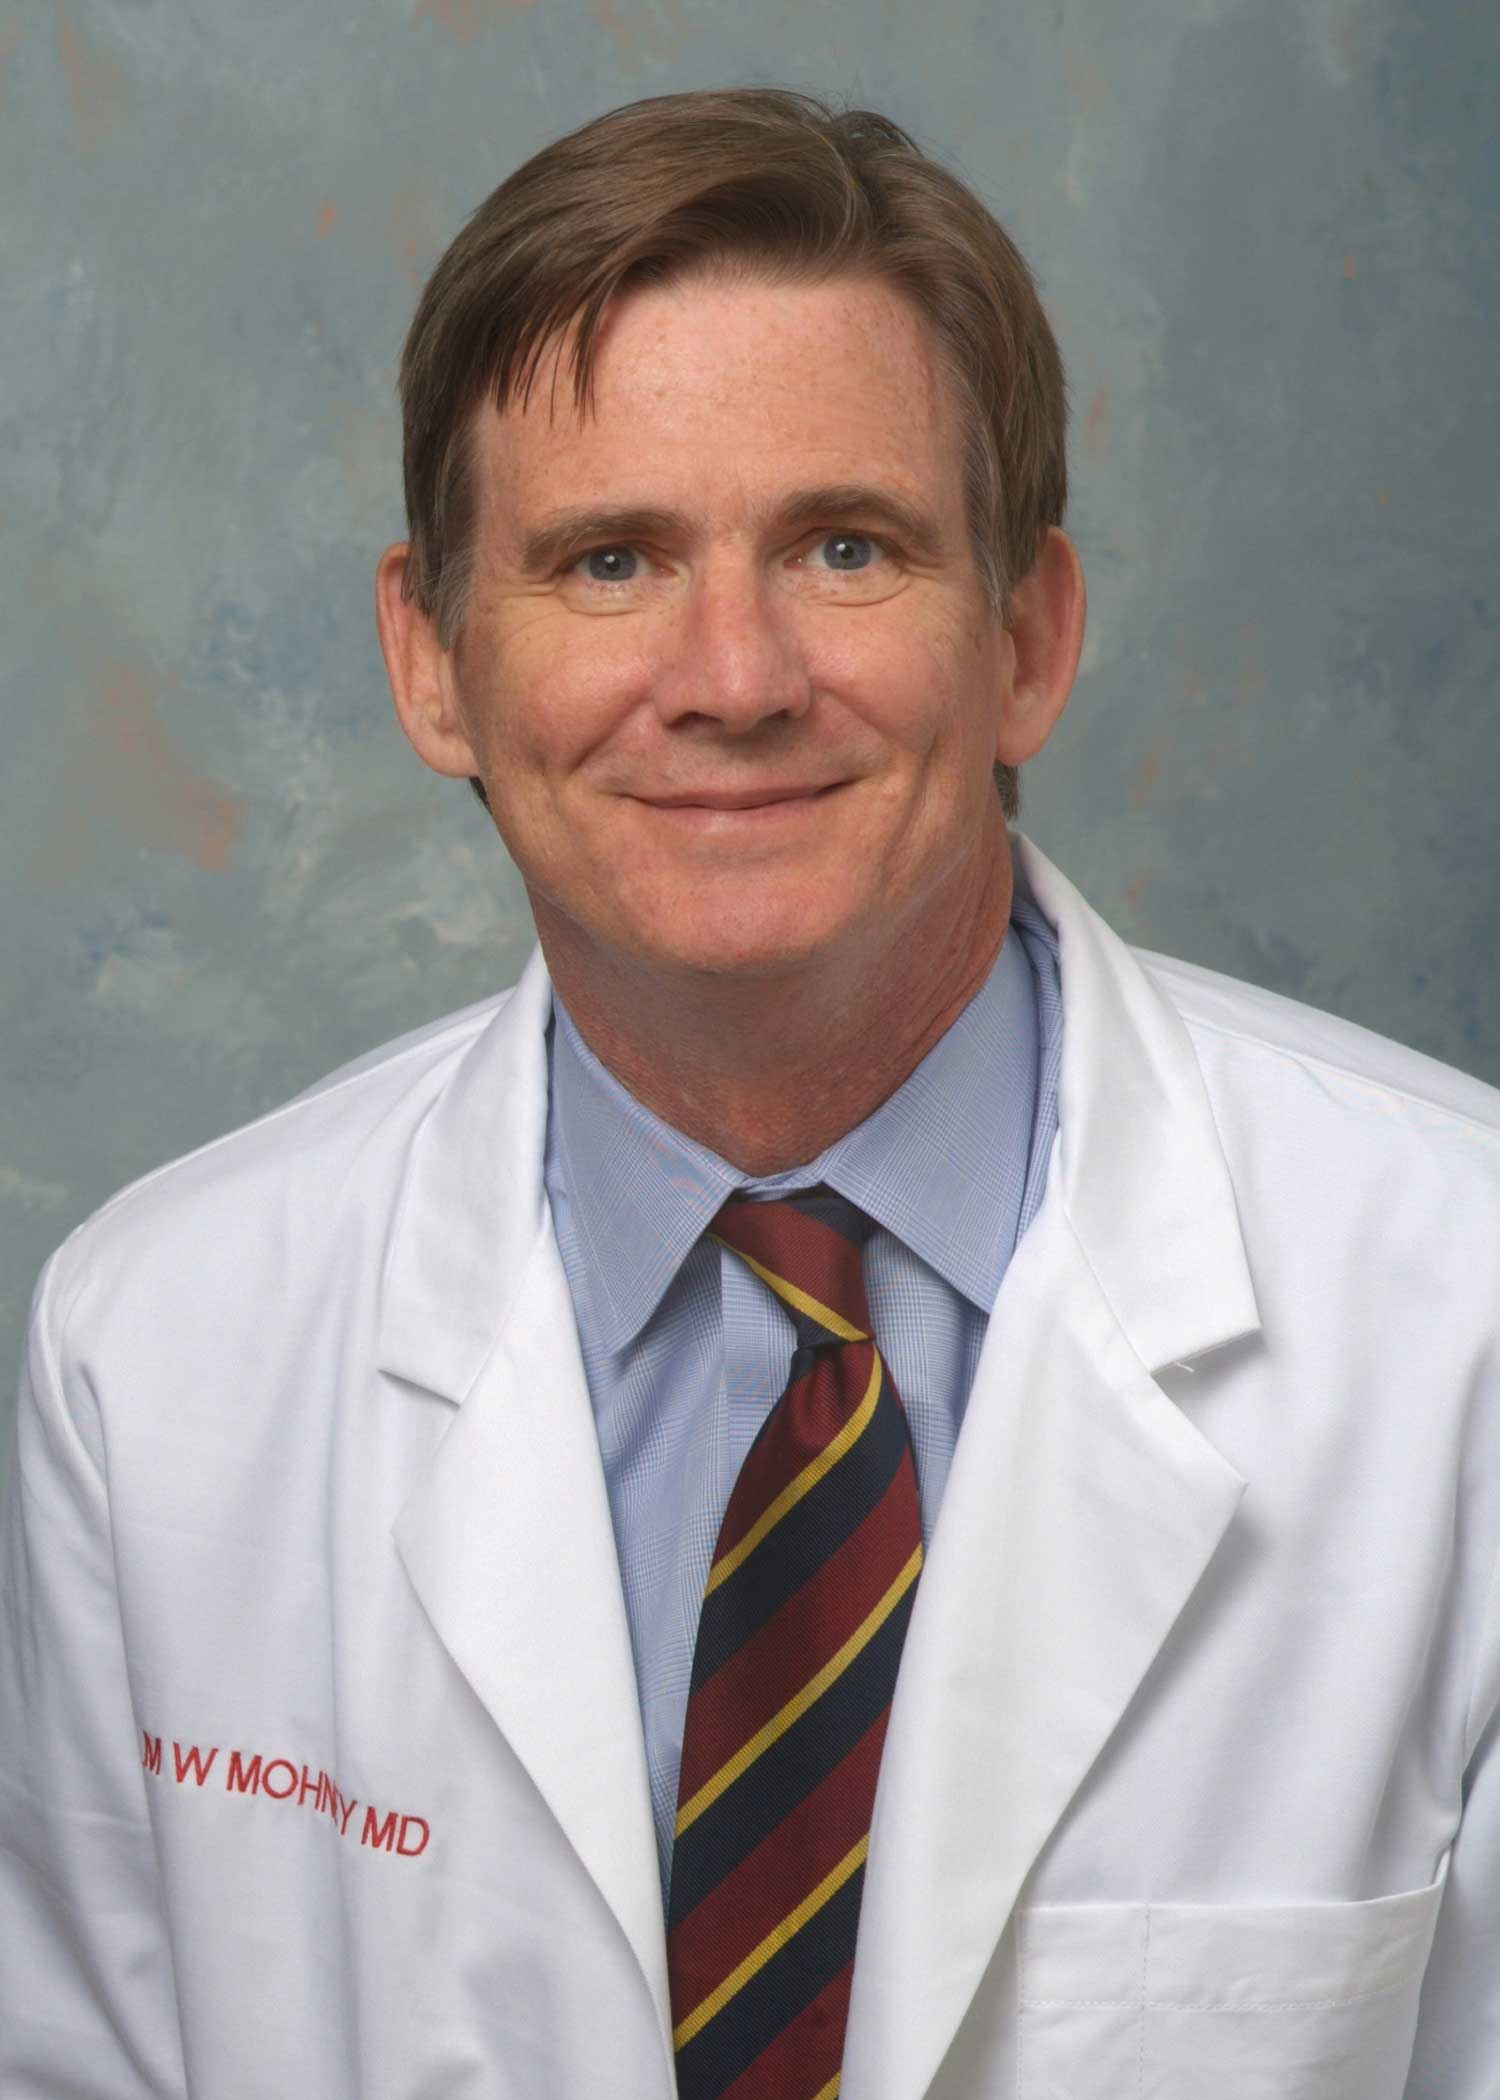 Dr. Mark Mohney, MD